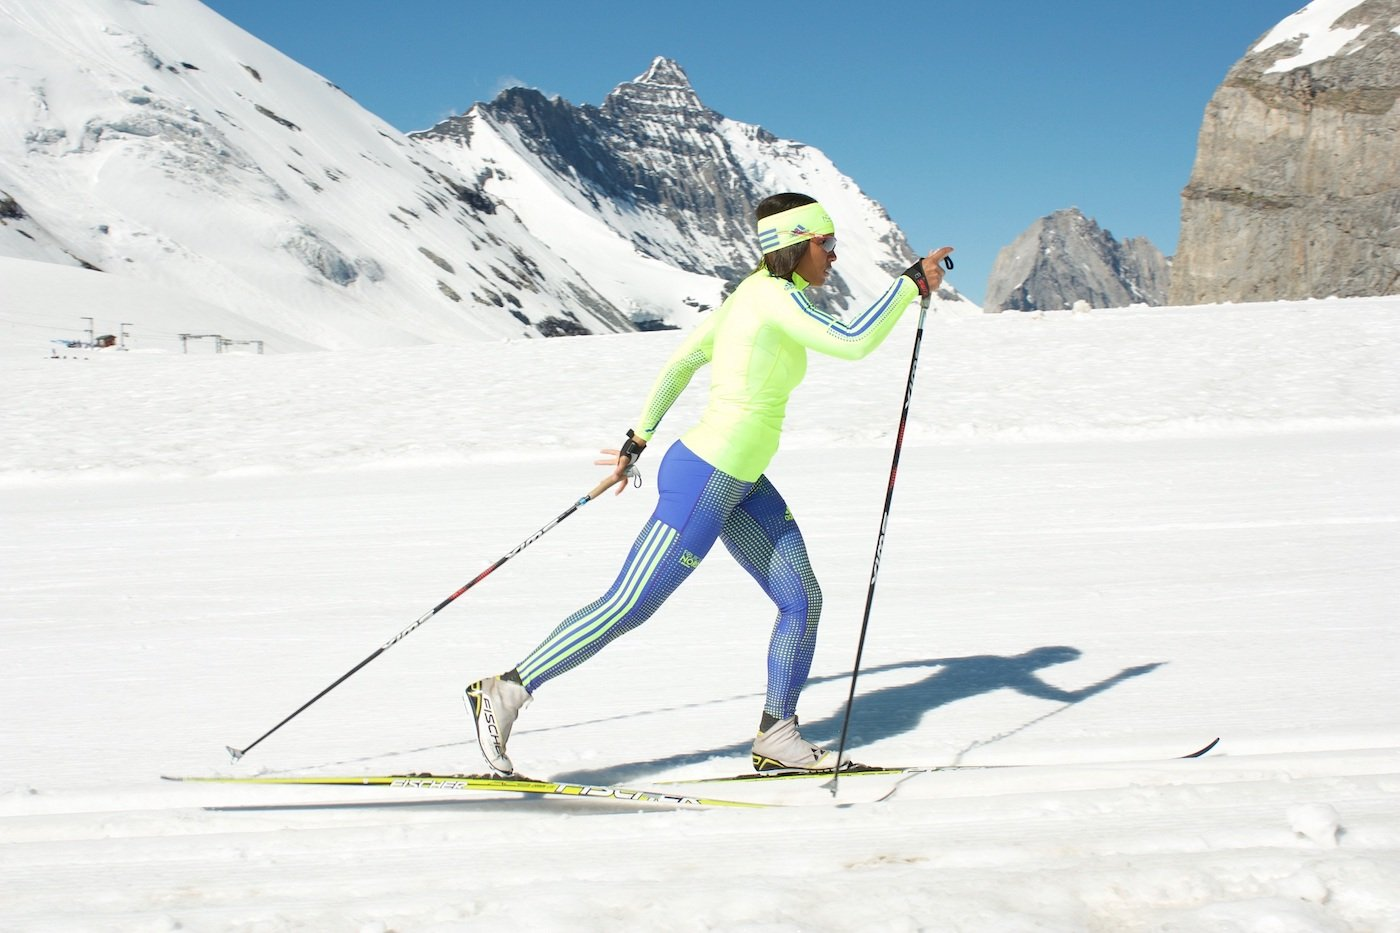 Classic stride cross-country ski